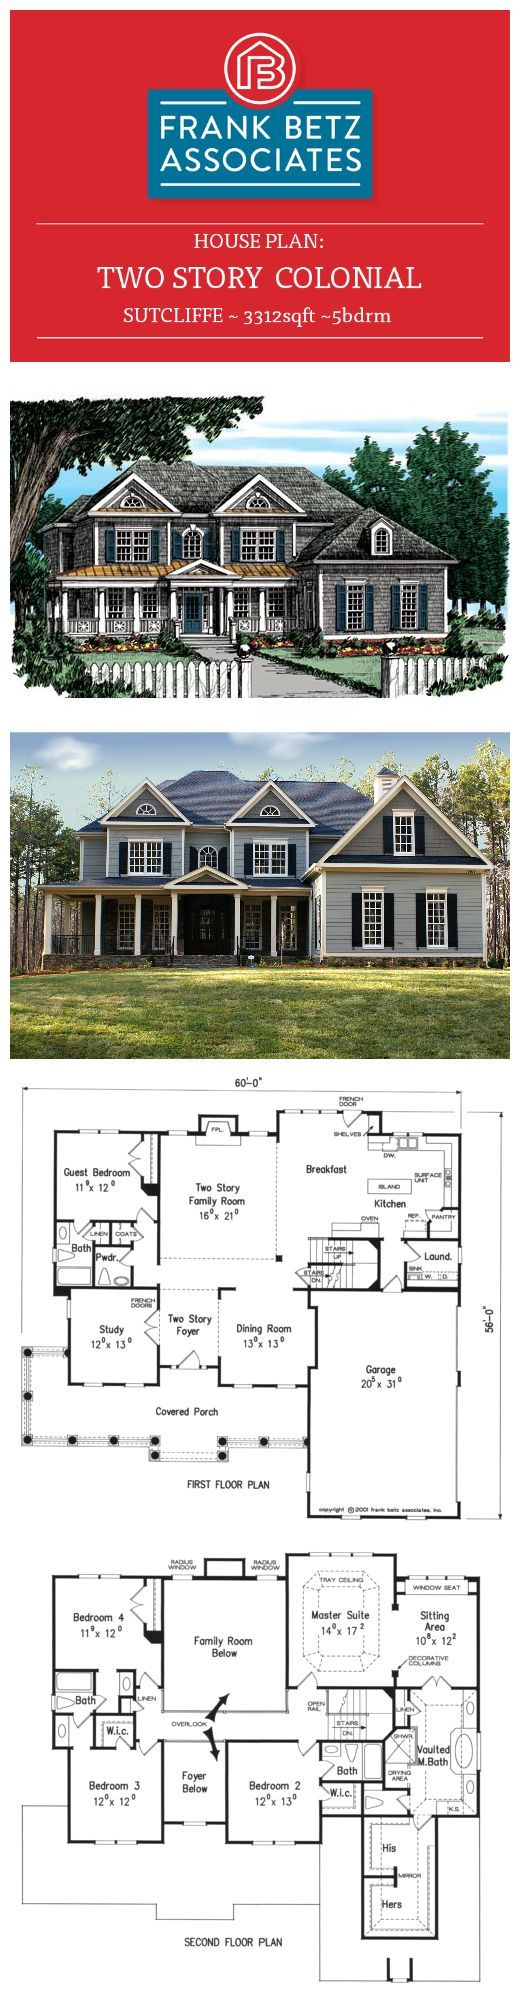 Sutcliffe: 3312sqft|5bdrm two-story Colonial house plan by Frank Betz Associates Inc. ~ Great pin! For Oahu architectural design visit http://ownerbuiltdesign.com